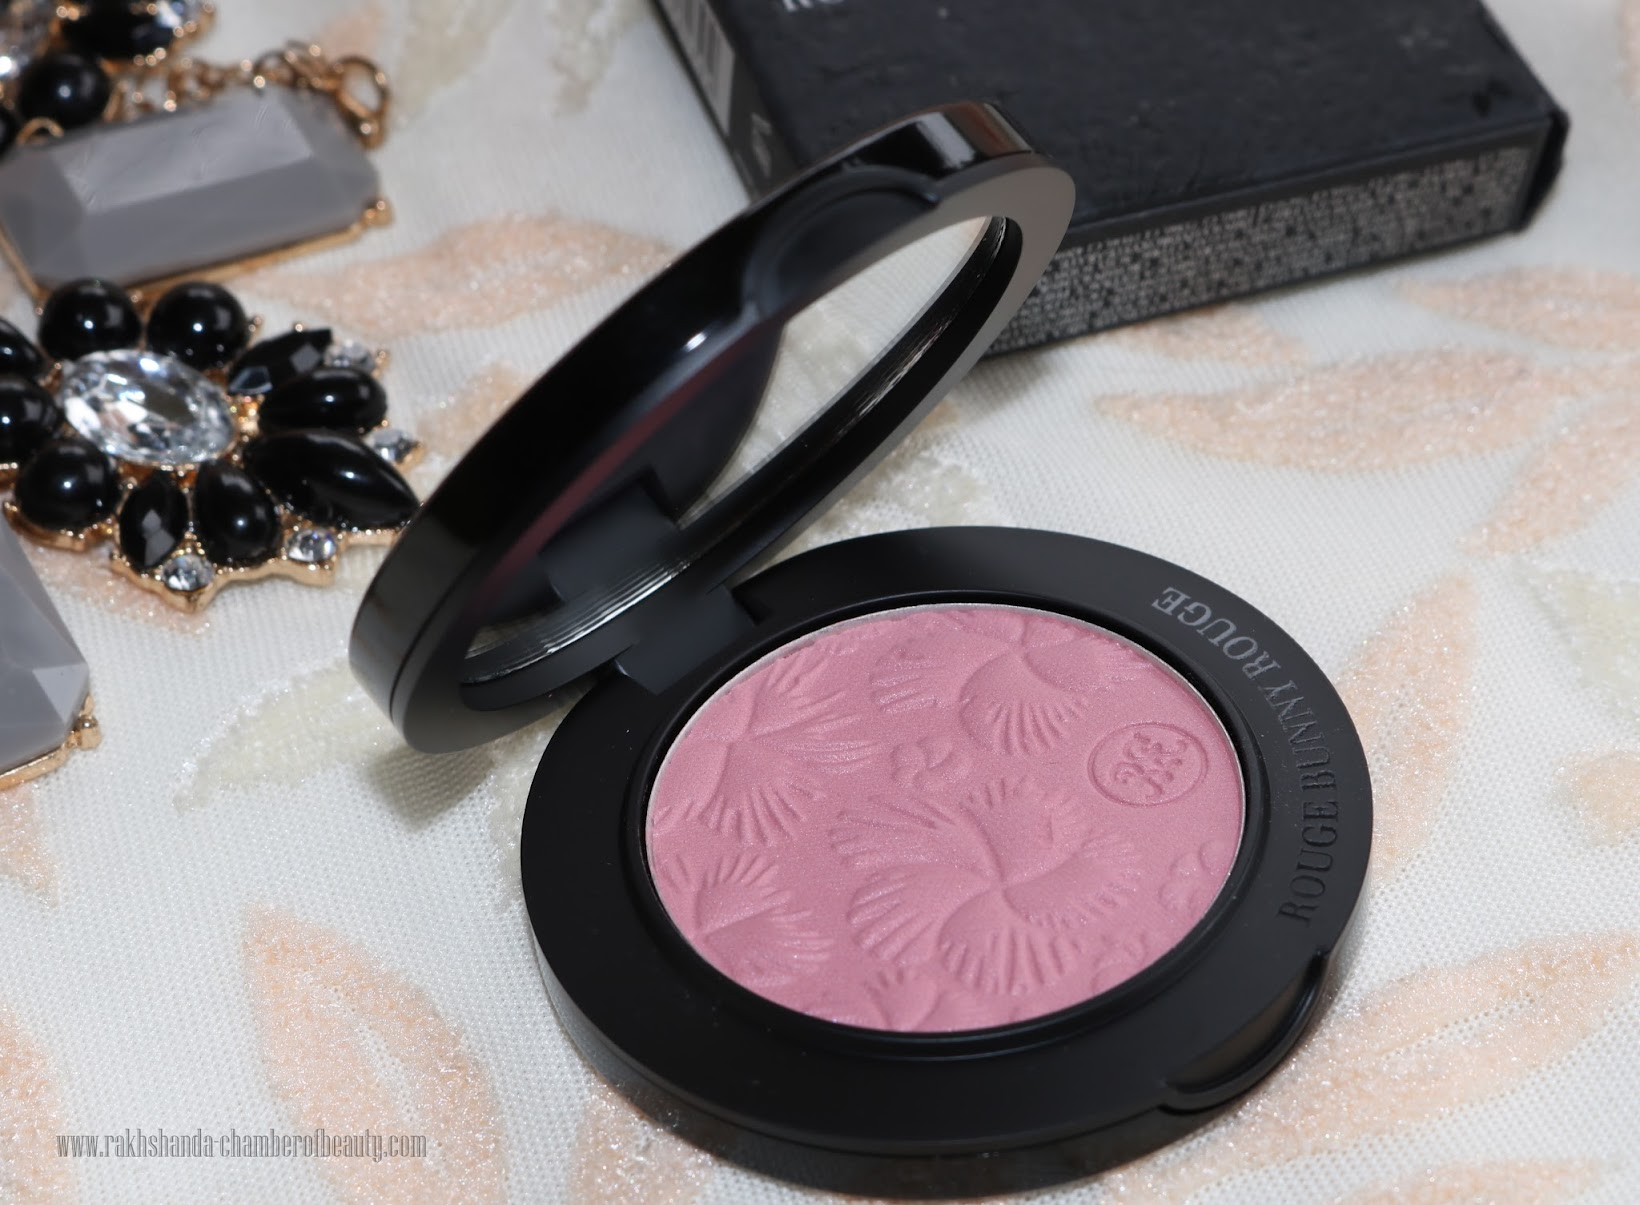 Rouge Bunny Rouge For The Love of Roses Original Skin blush- review, swatches & FOTD | New & Improved, Best luxury plum blush, Indian beauty blogger, Chamber of Beauty